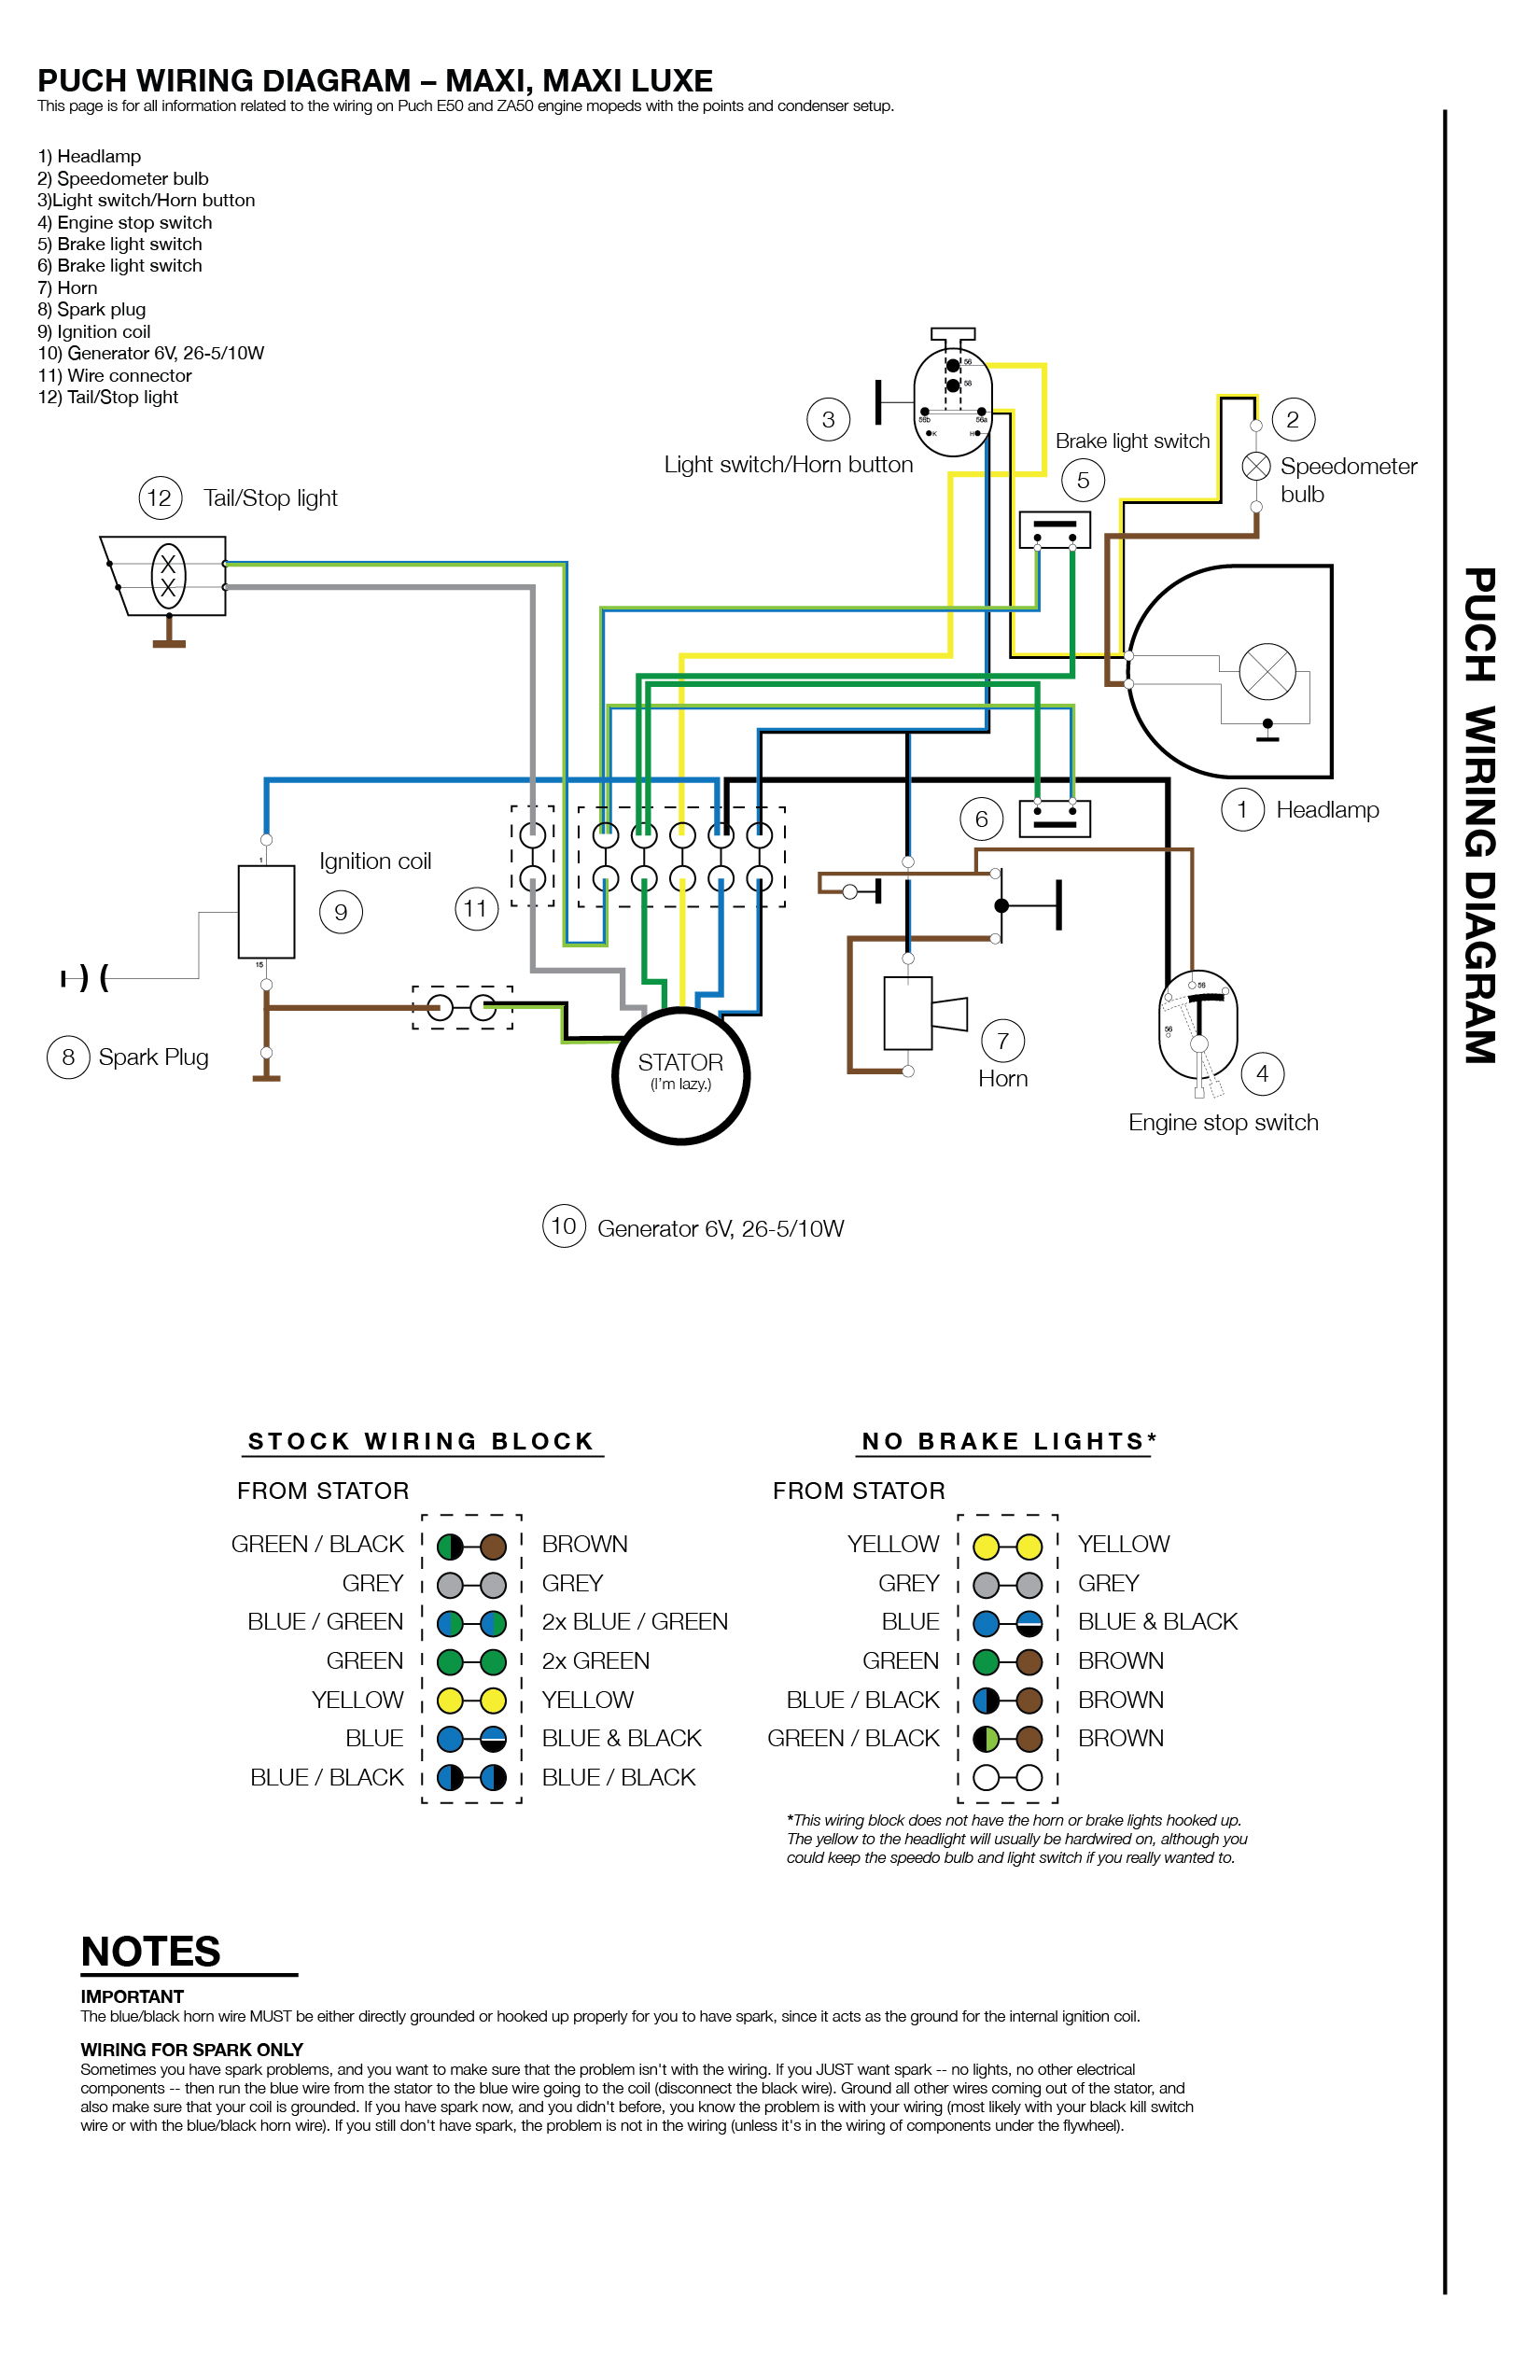 Puch_wiring 02 puch wiring moped wiki 50cc scooter wiring diagram at fashall.co